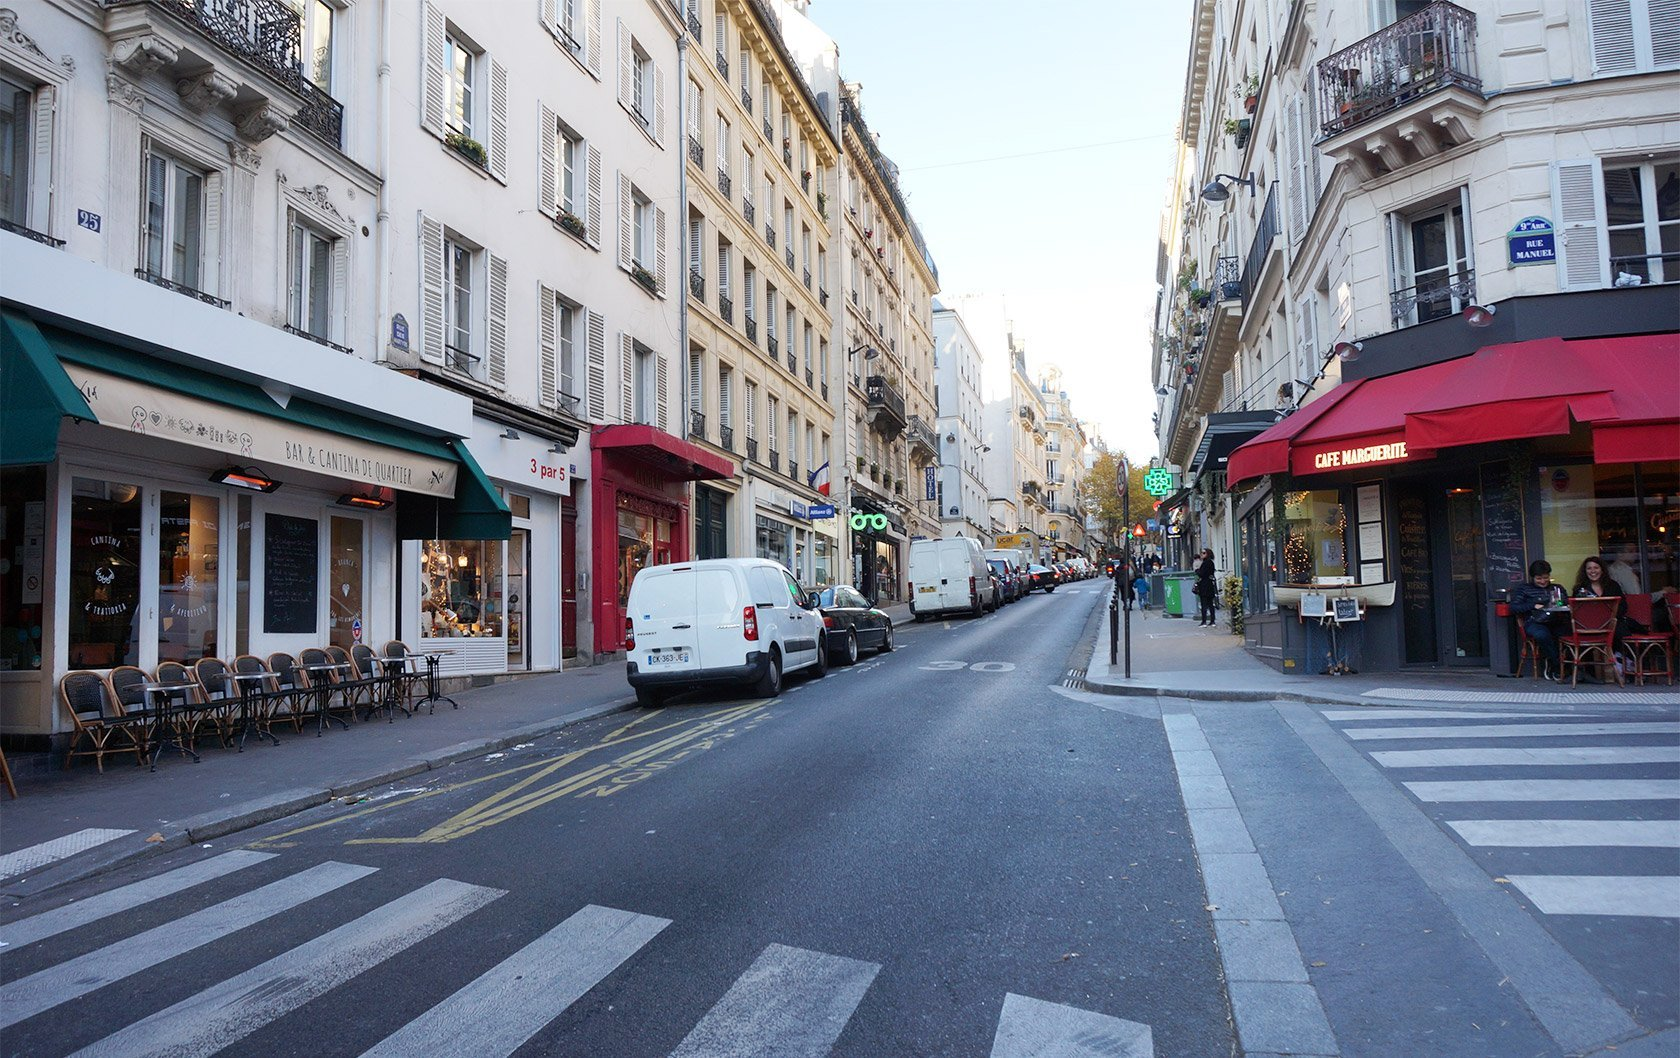 EG-rue-des-martyrs-shopping-paris-3